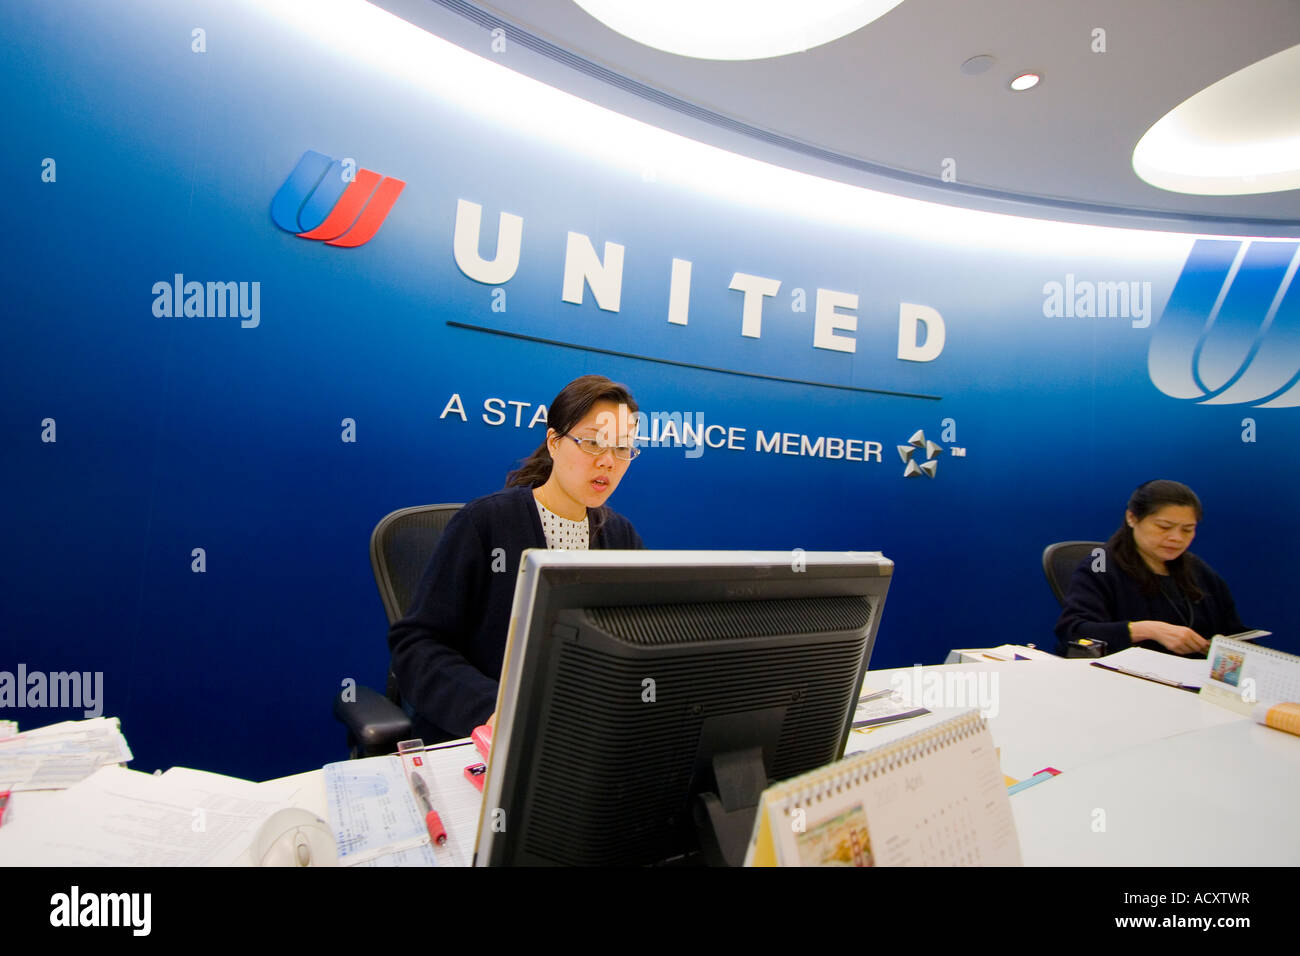 Airlines ticket stock photos airlines ticket stock images alamy - Delta airlines hong kong office ...